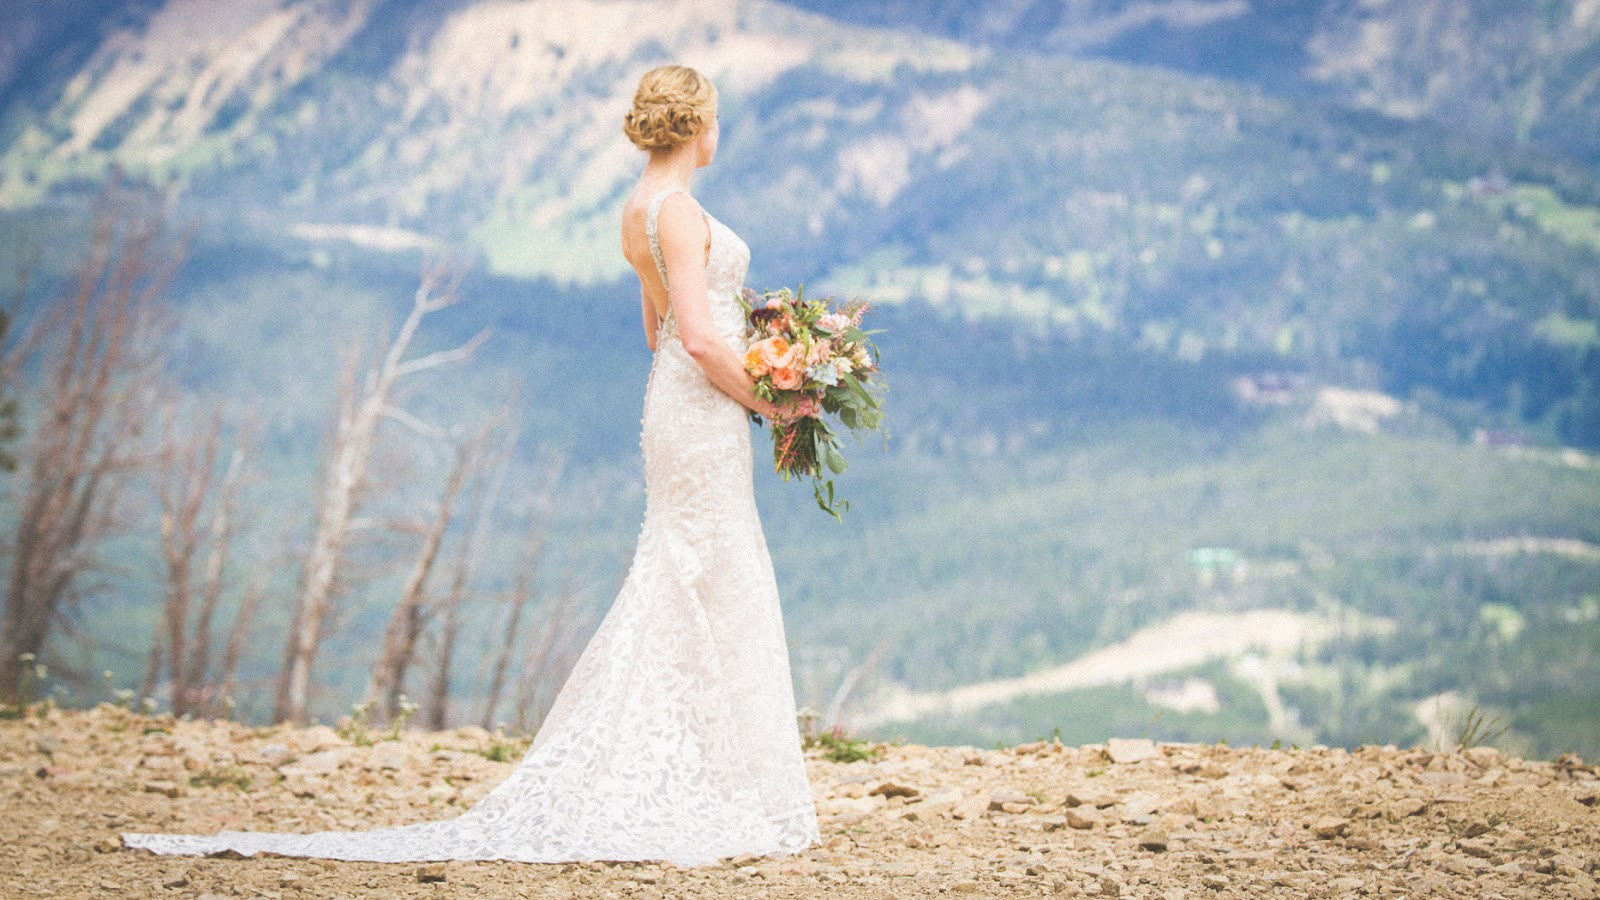 Montana Wedding / Eye in the Sky Photography / Big Sky Resort / Flowers: Katalin Green / Dress: Allure Bridals